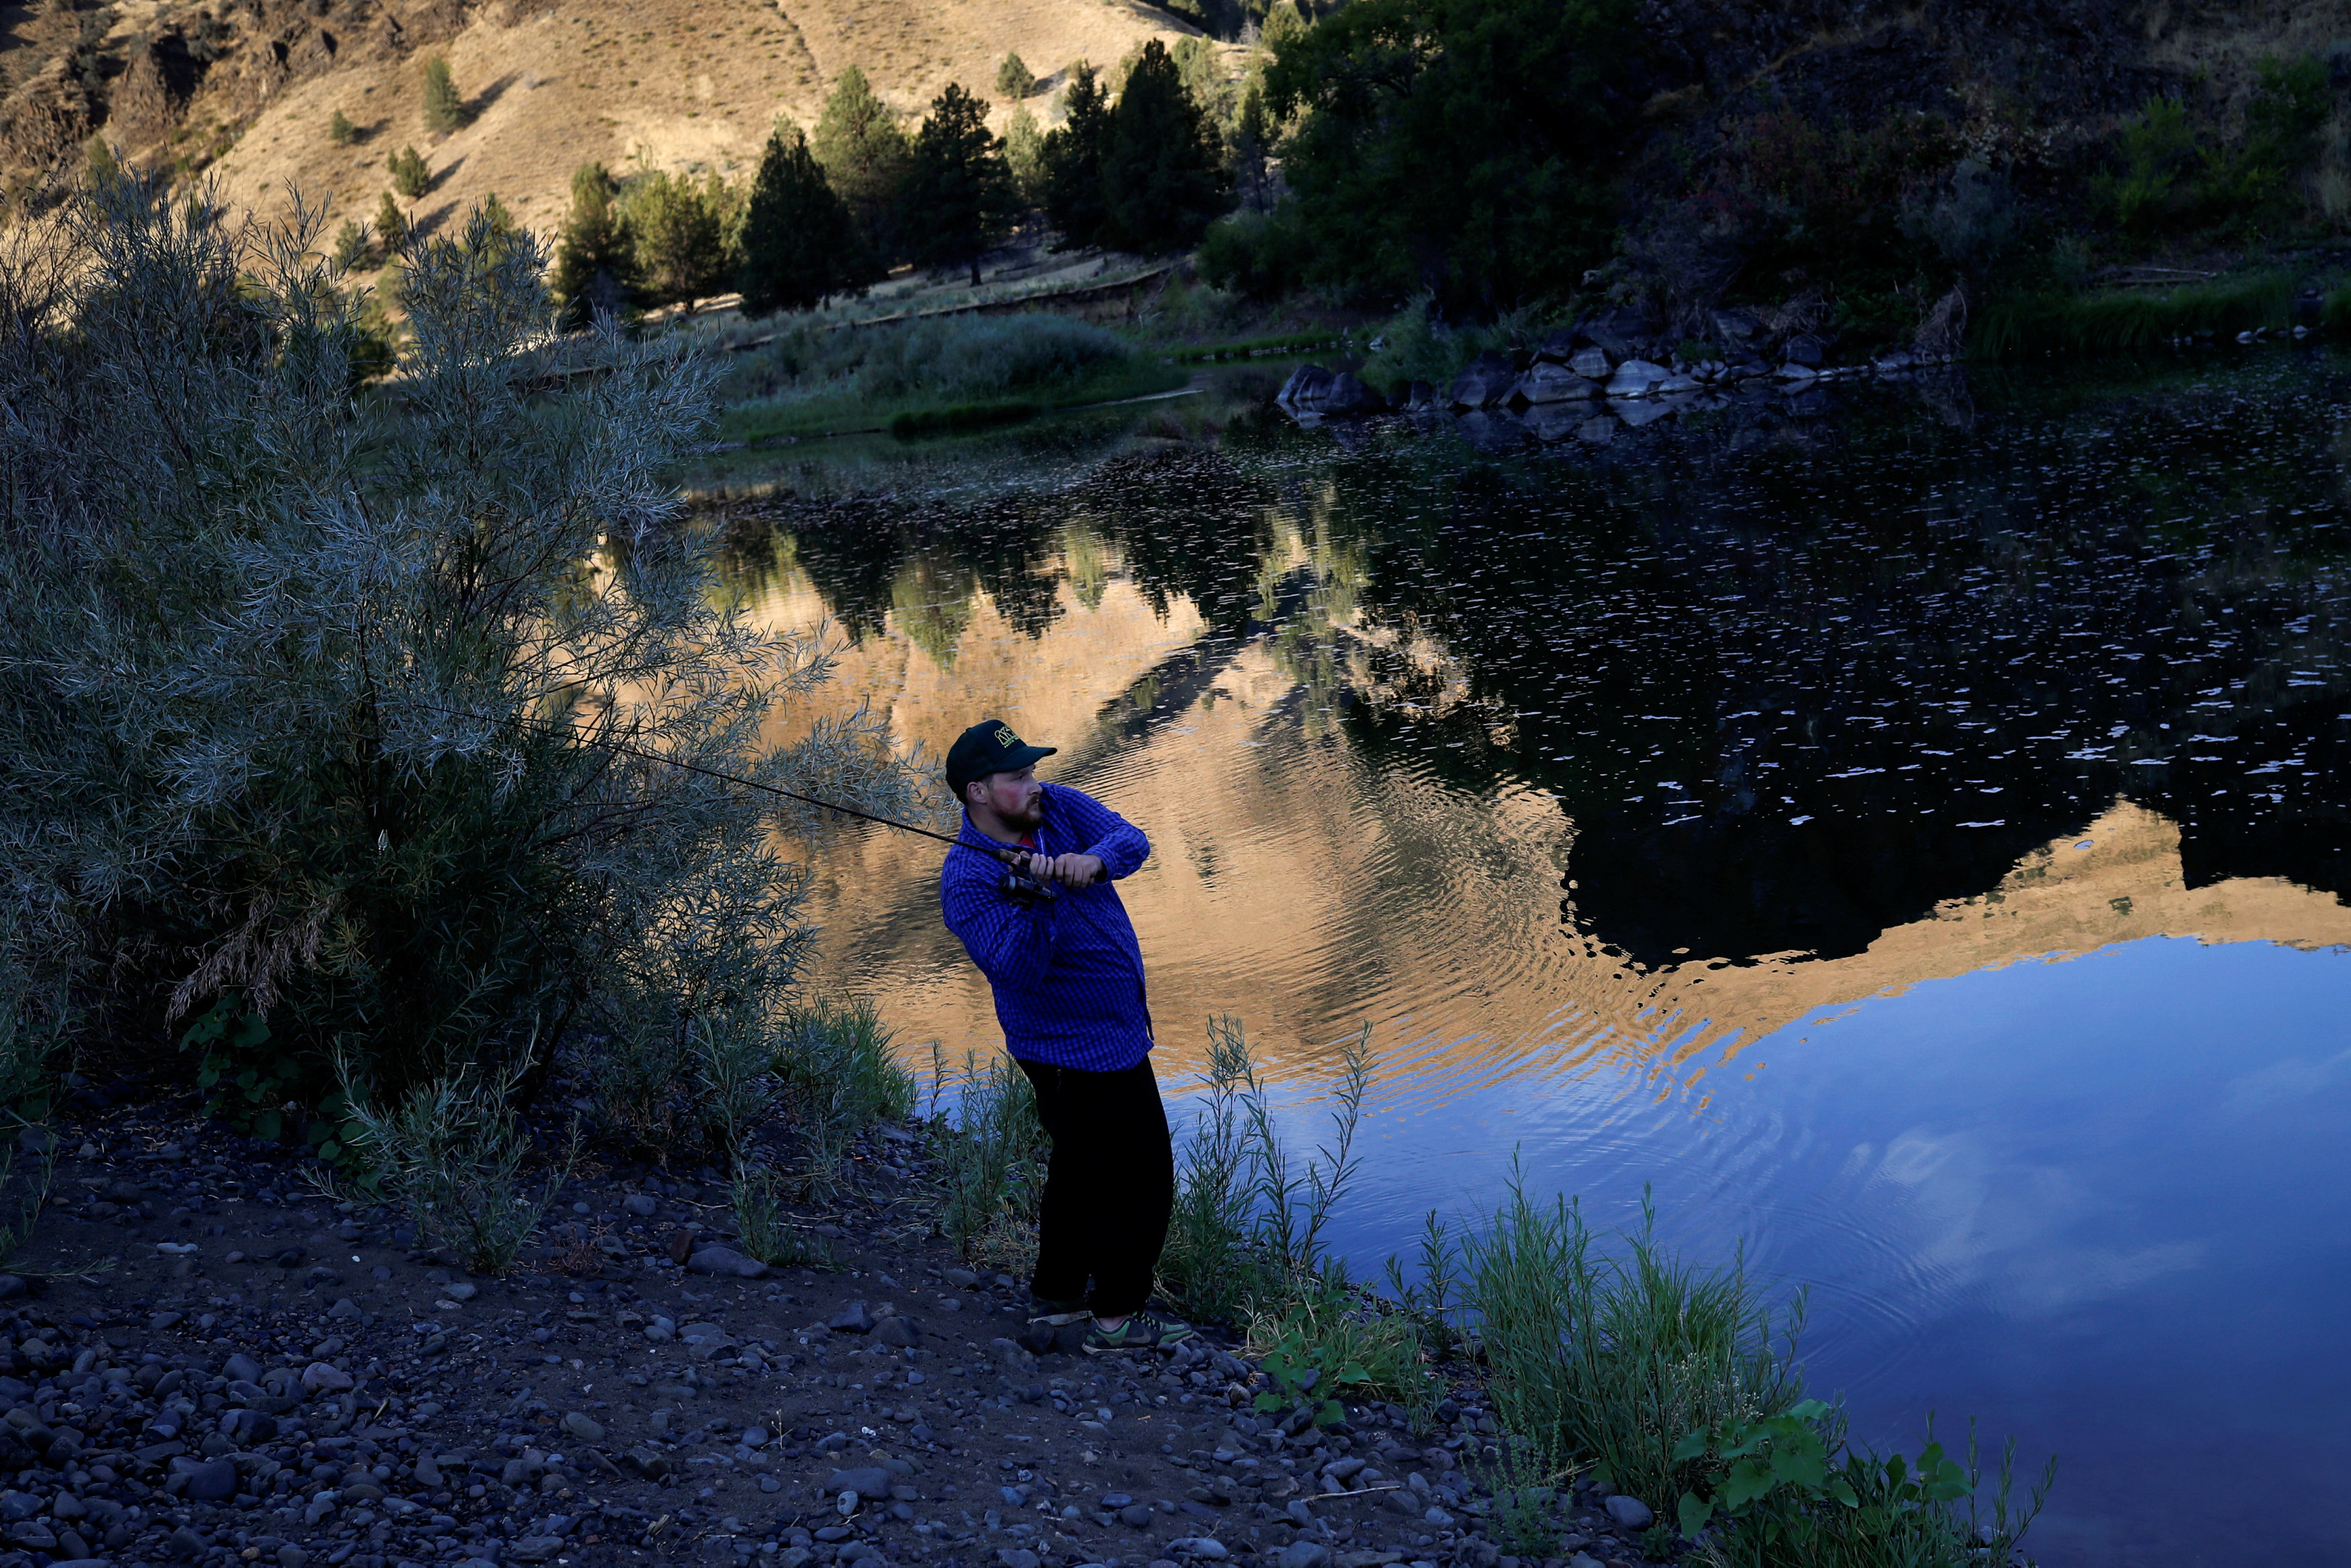 KC DeRemer fishes for bass while camping along the John Day River ahead of the total lunar eclipse in Kimberly, Oregon, U.S. August 20, 2017. REUTERS/Adrees Latif